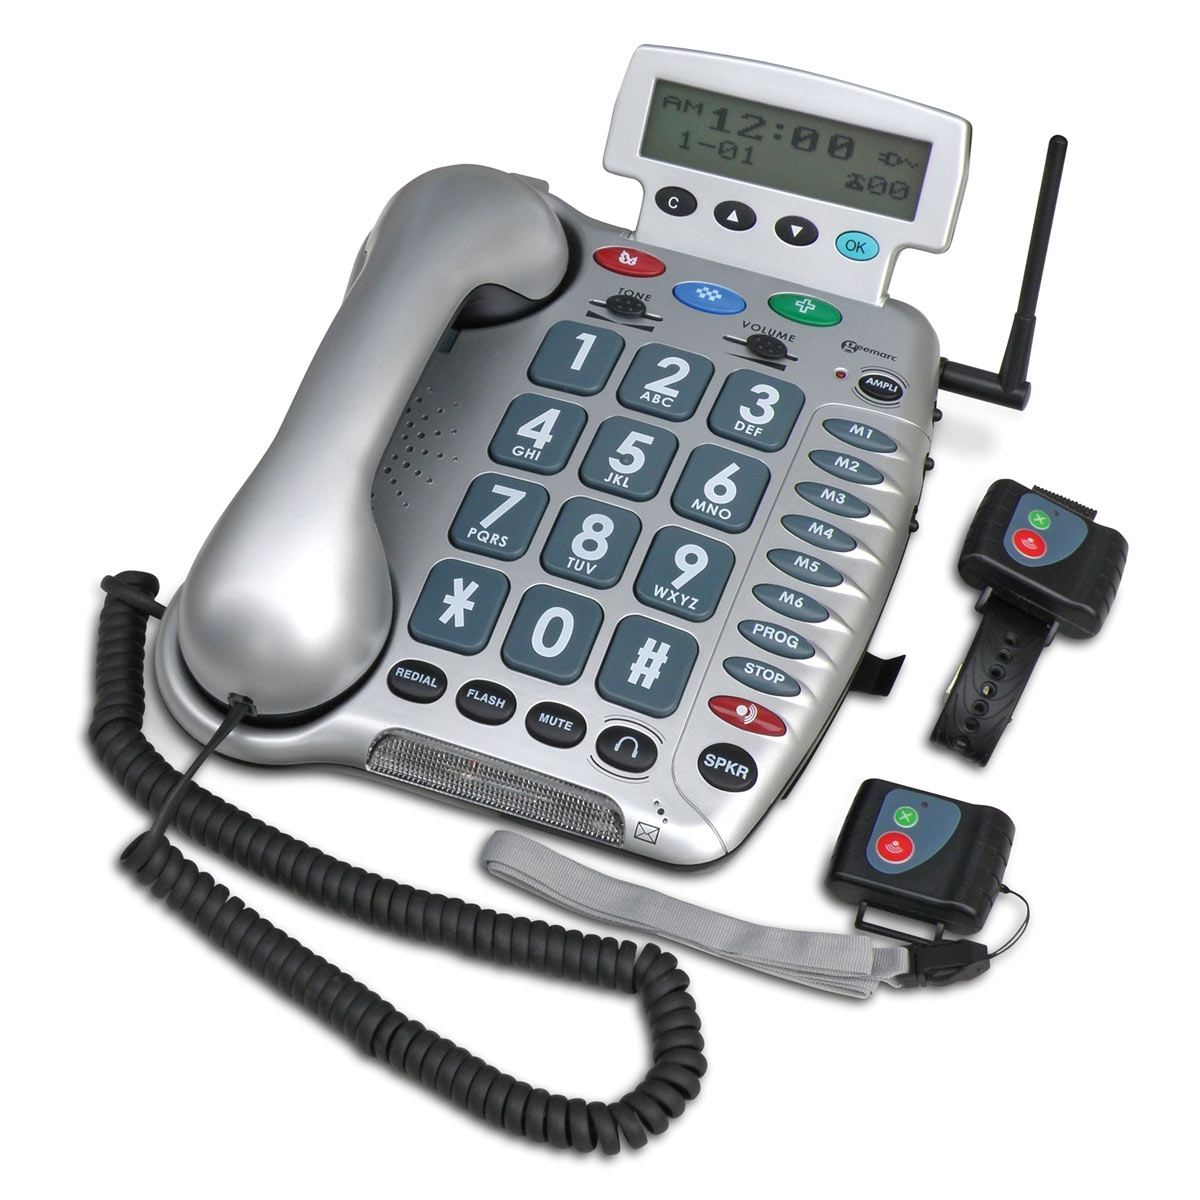 Emergency Connect Phone Price: $135.95